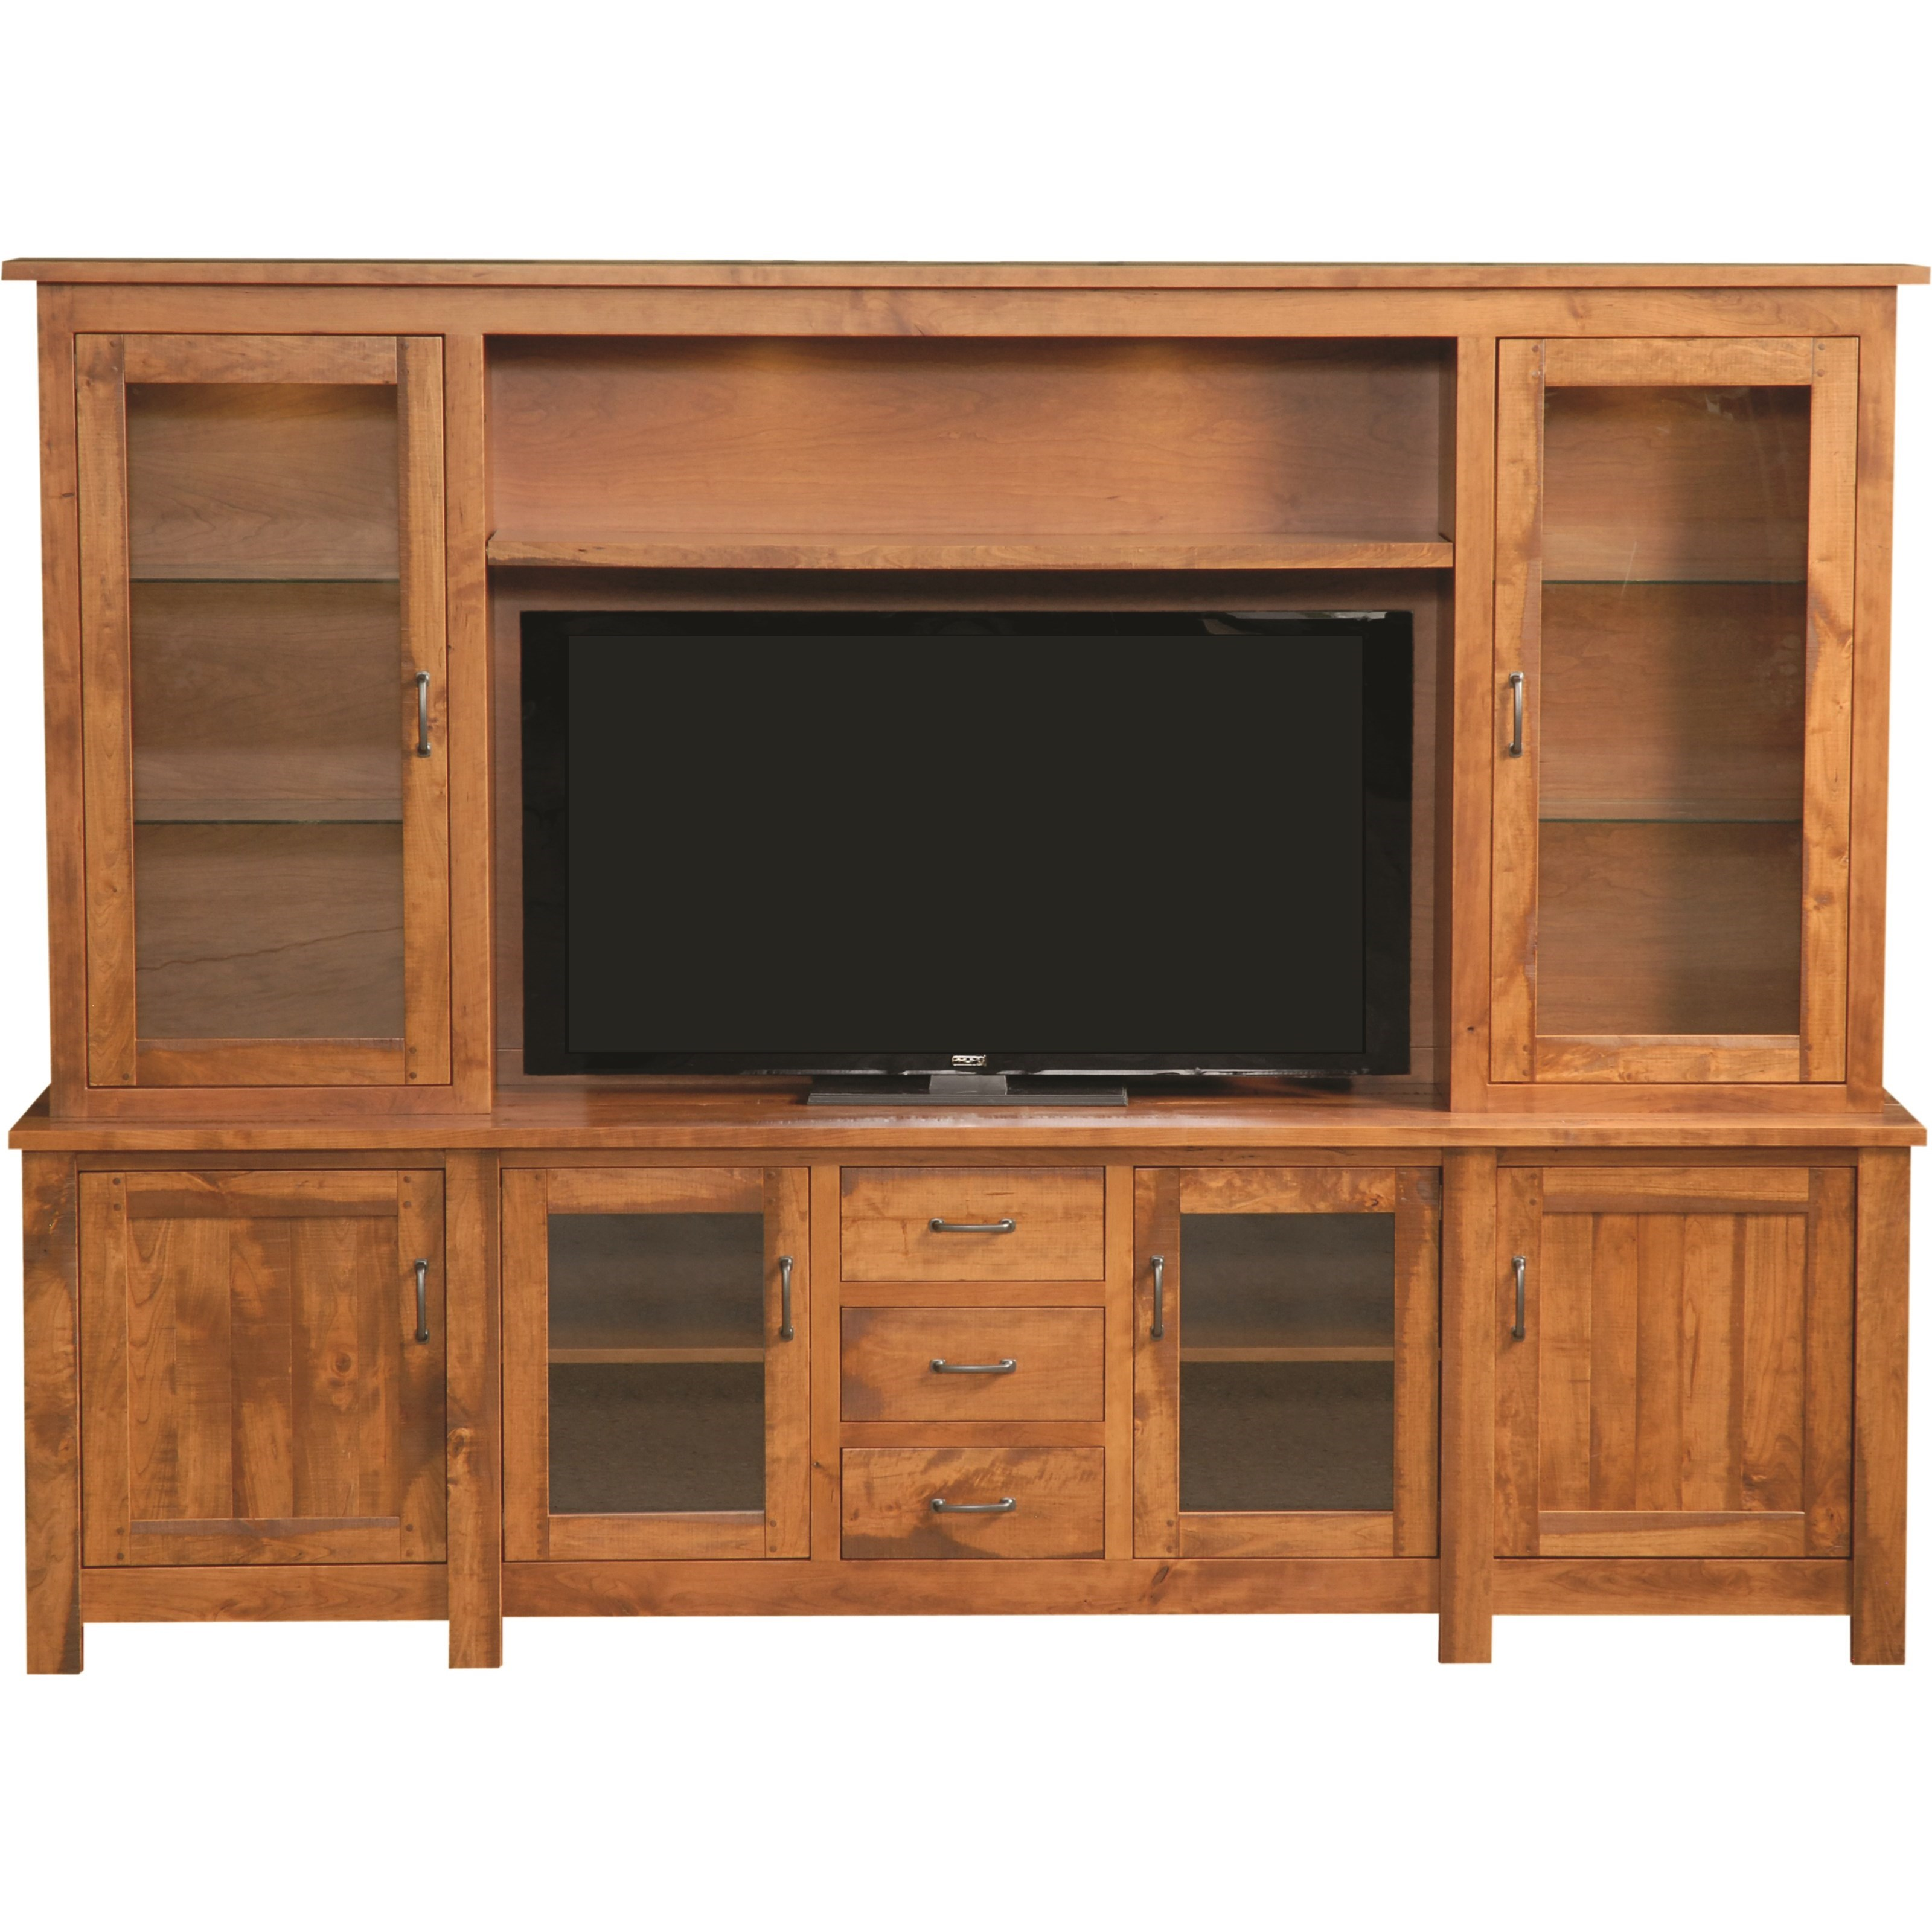 Entertainment Rustic Hutch Wall Unit by INTEG Wood Products at Saugerties Furniture Mart